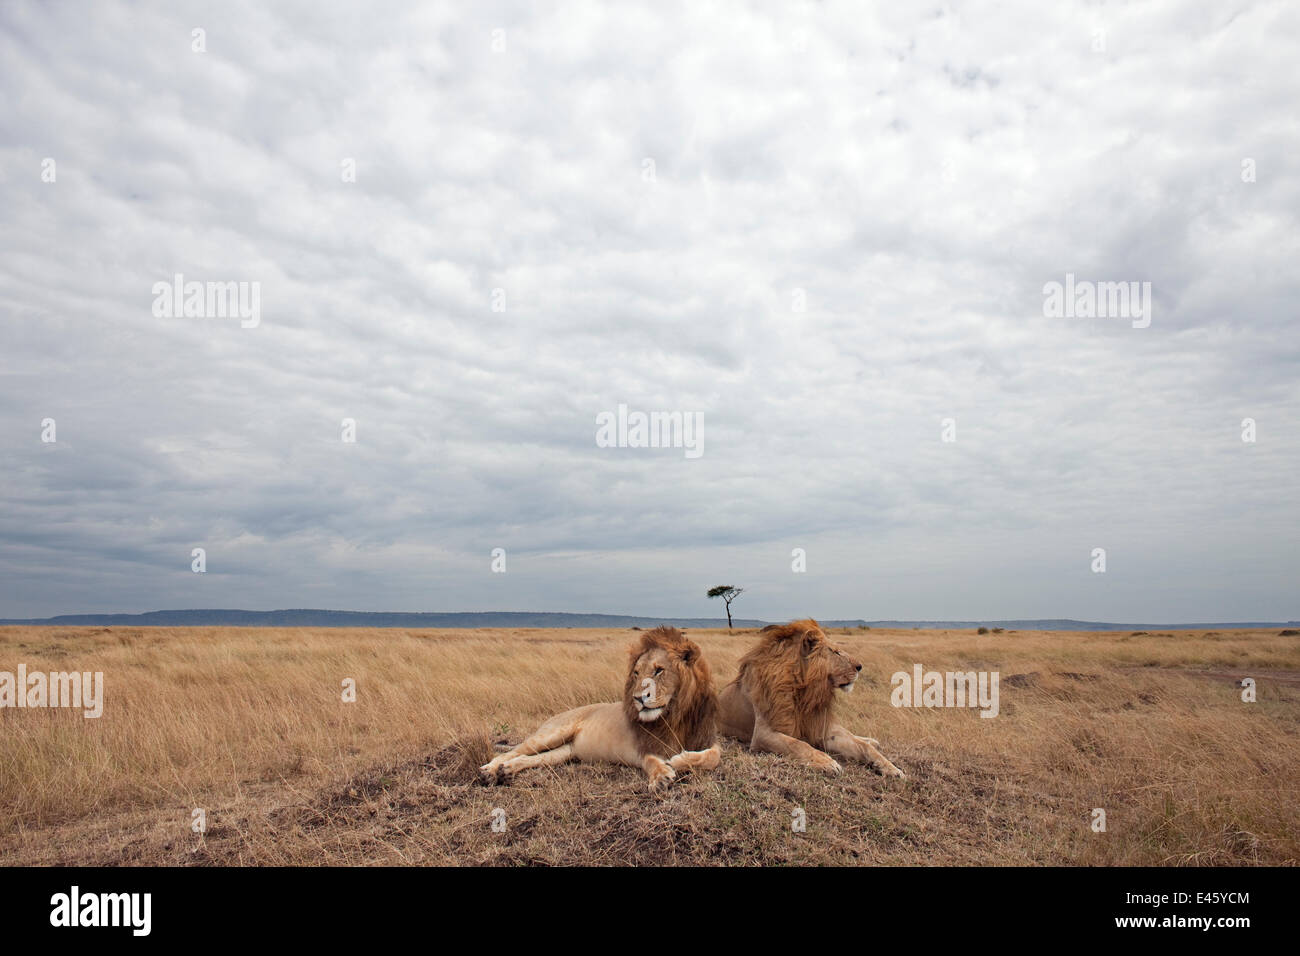 Lion males (Panthera leo) lying on a grass mound. Masai Mara National Reserve, Kenya, August 2009 - Stock Image